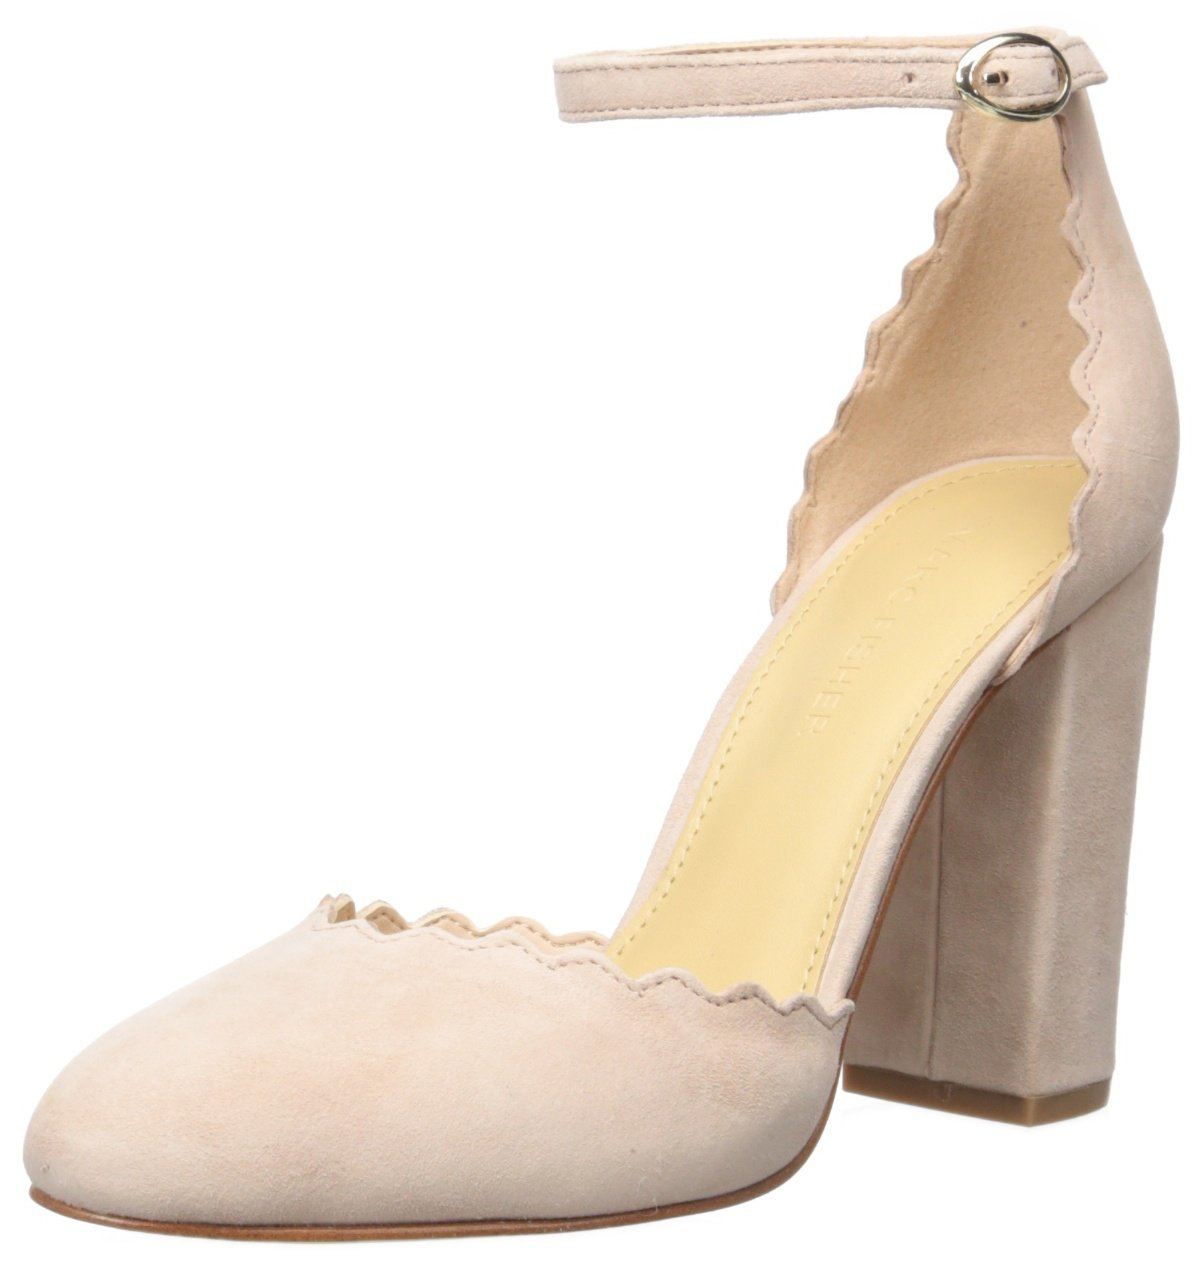 Marc Fisher Women's Sahar Pump B01N2U0N65 5.5 B(M) US|Light Pink